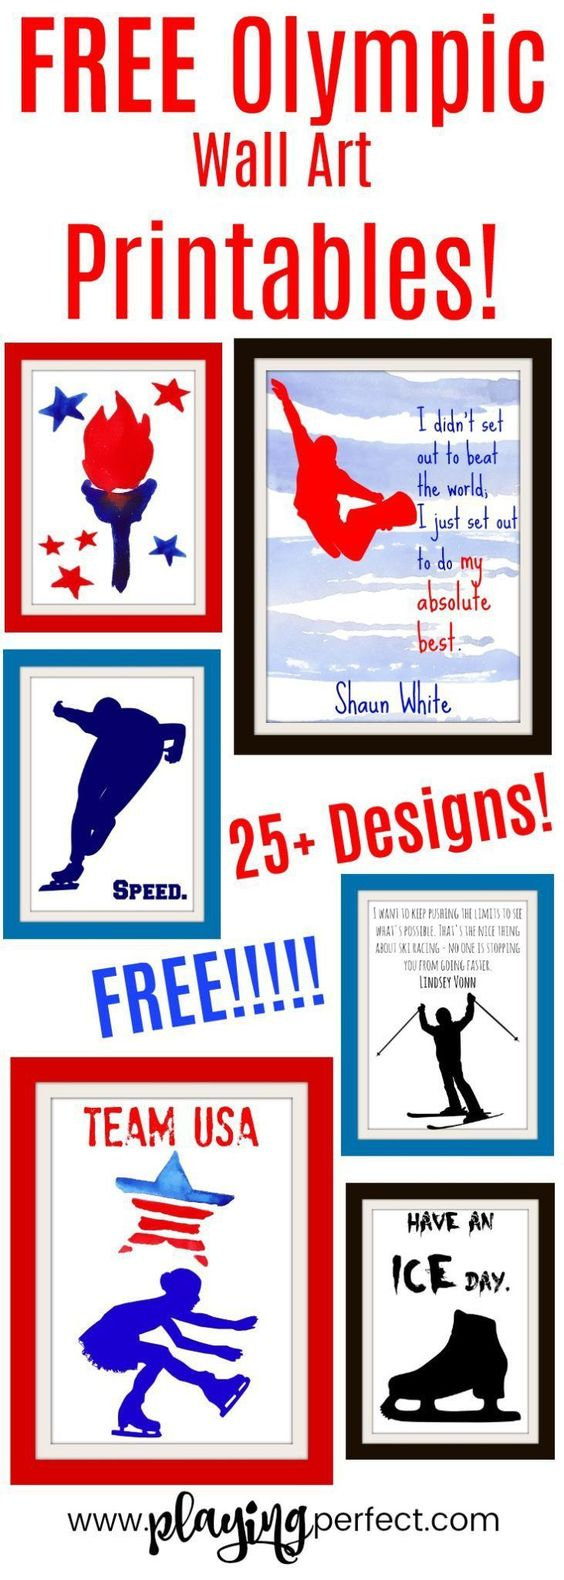 28 Winning Gift Ideas Fans Of The Olympics Will Love Playing Perfect Olympic Games For Kids Olympic Theme Olympic Printables [ 1580 x 564 Pixel ]